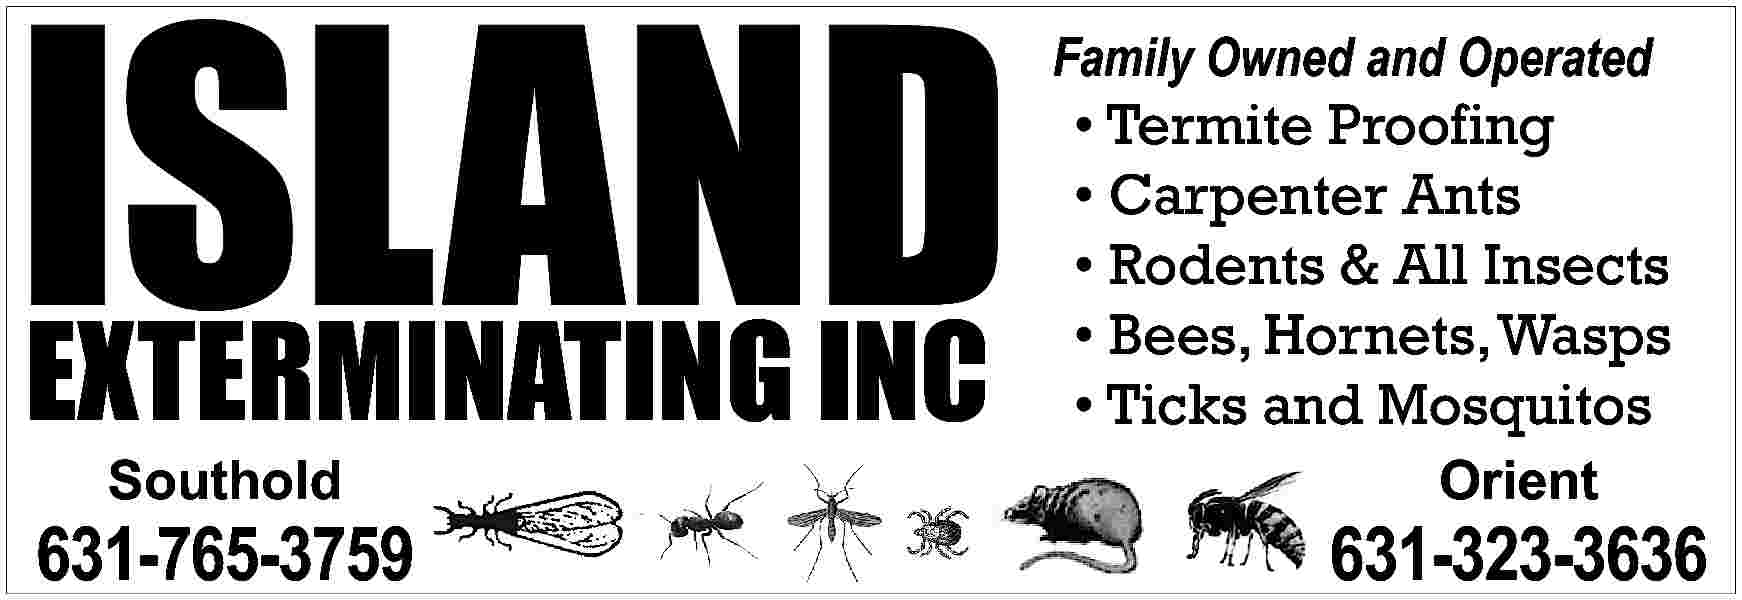 ISLAND EXTERMINATING INC Family ISLAND EXTERMINATING INC  Family Owned and Operated      Termite Proofing     Carpenter Ants     Rodents & All Insects     Bees, Hornets, Wasps     Ticks and Mosquitos  Southold  Orient  631-765-3759  631-323-3636